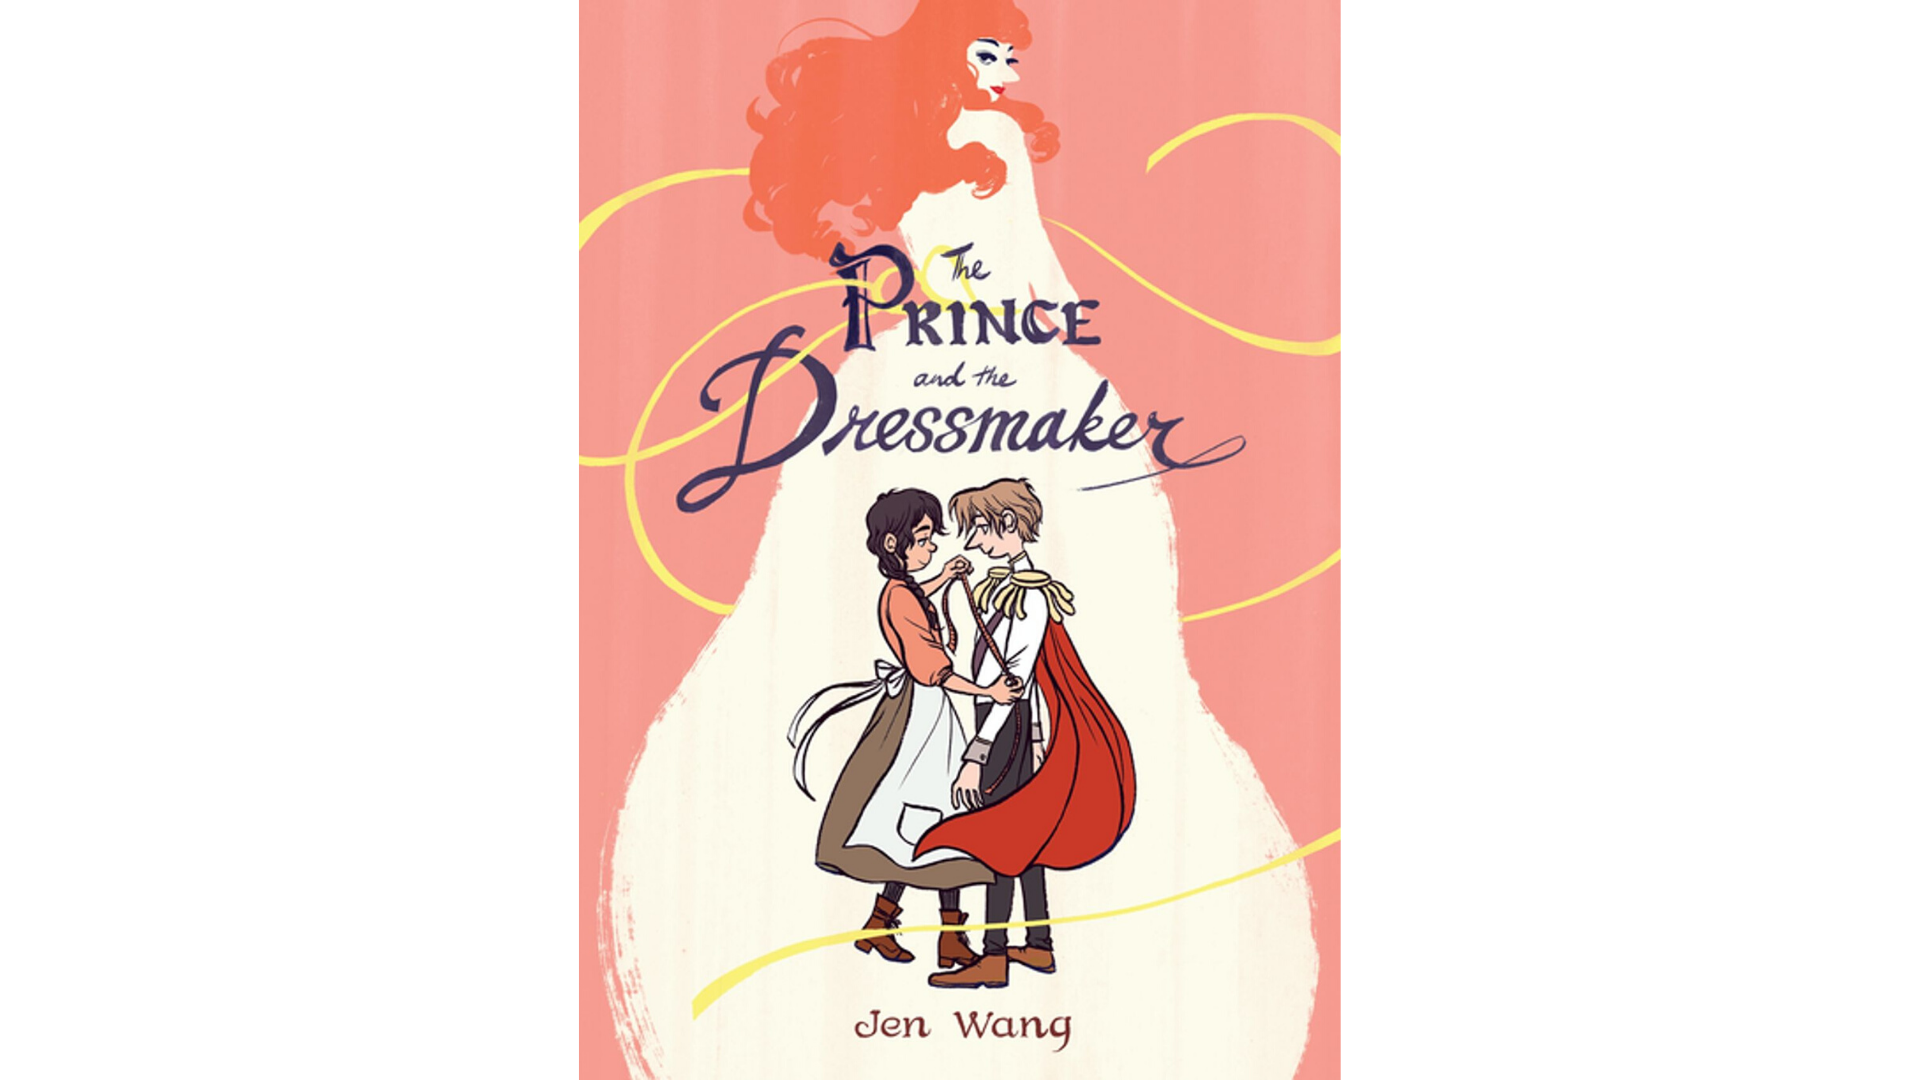 #23 The Prince And The Dressmaker